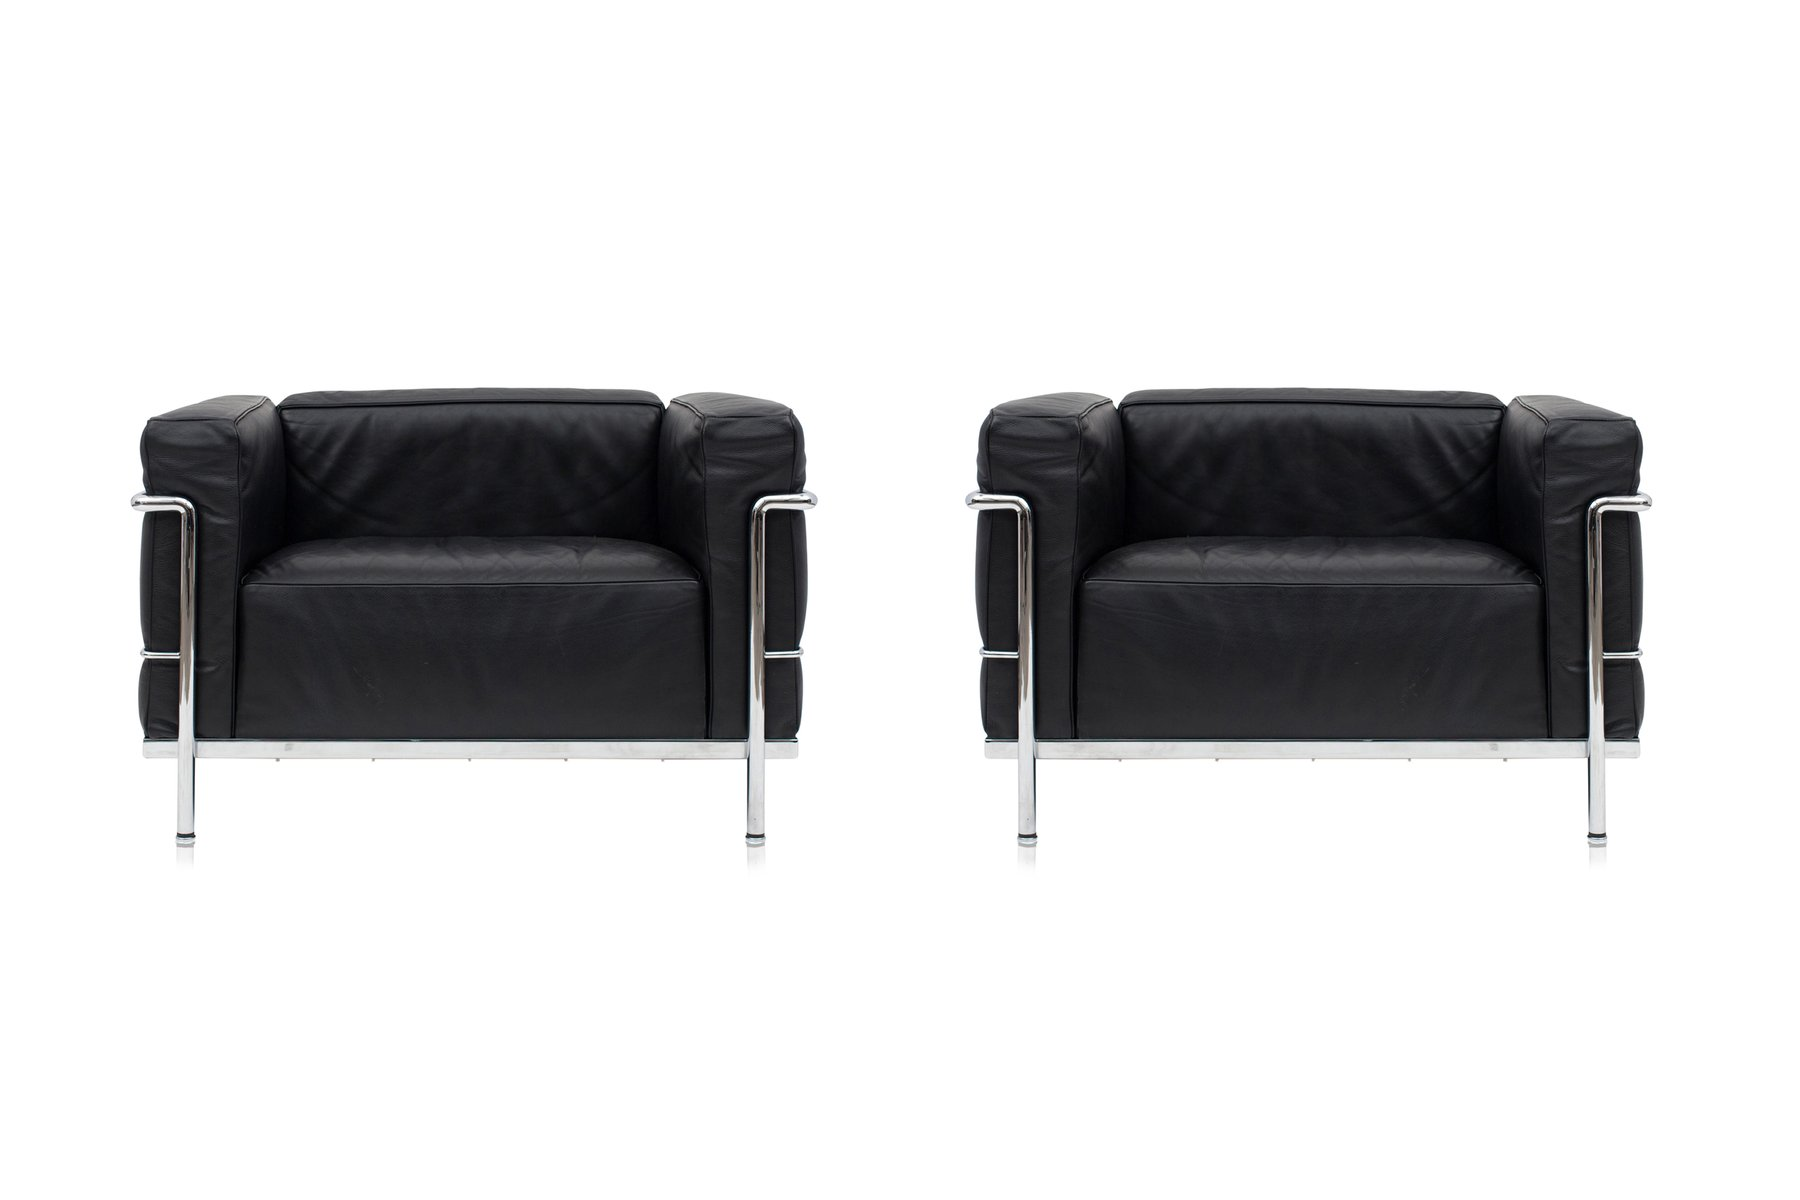 LC3 Black Poltrona Lounge Chairs from Le Corbusier for Cassina